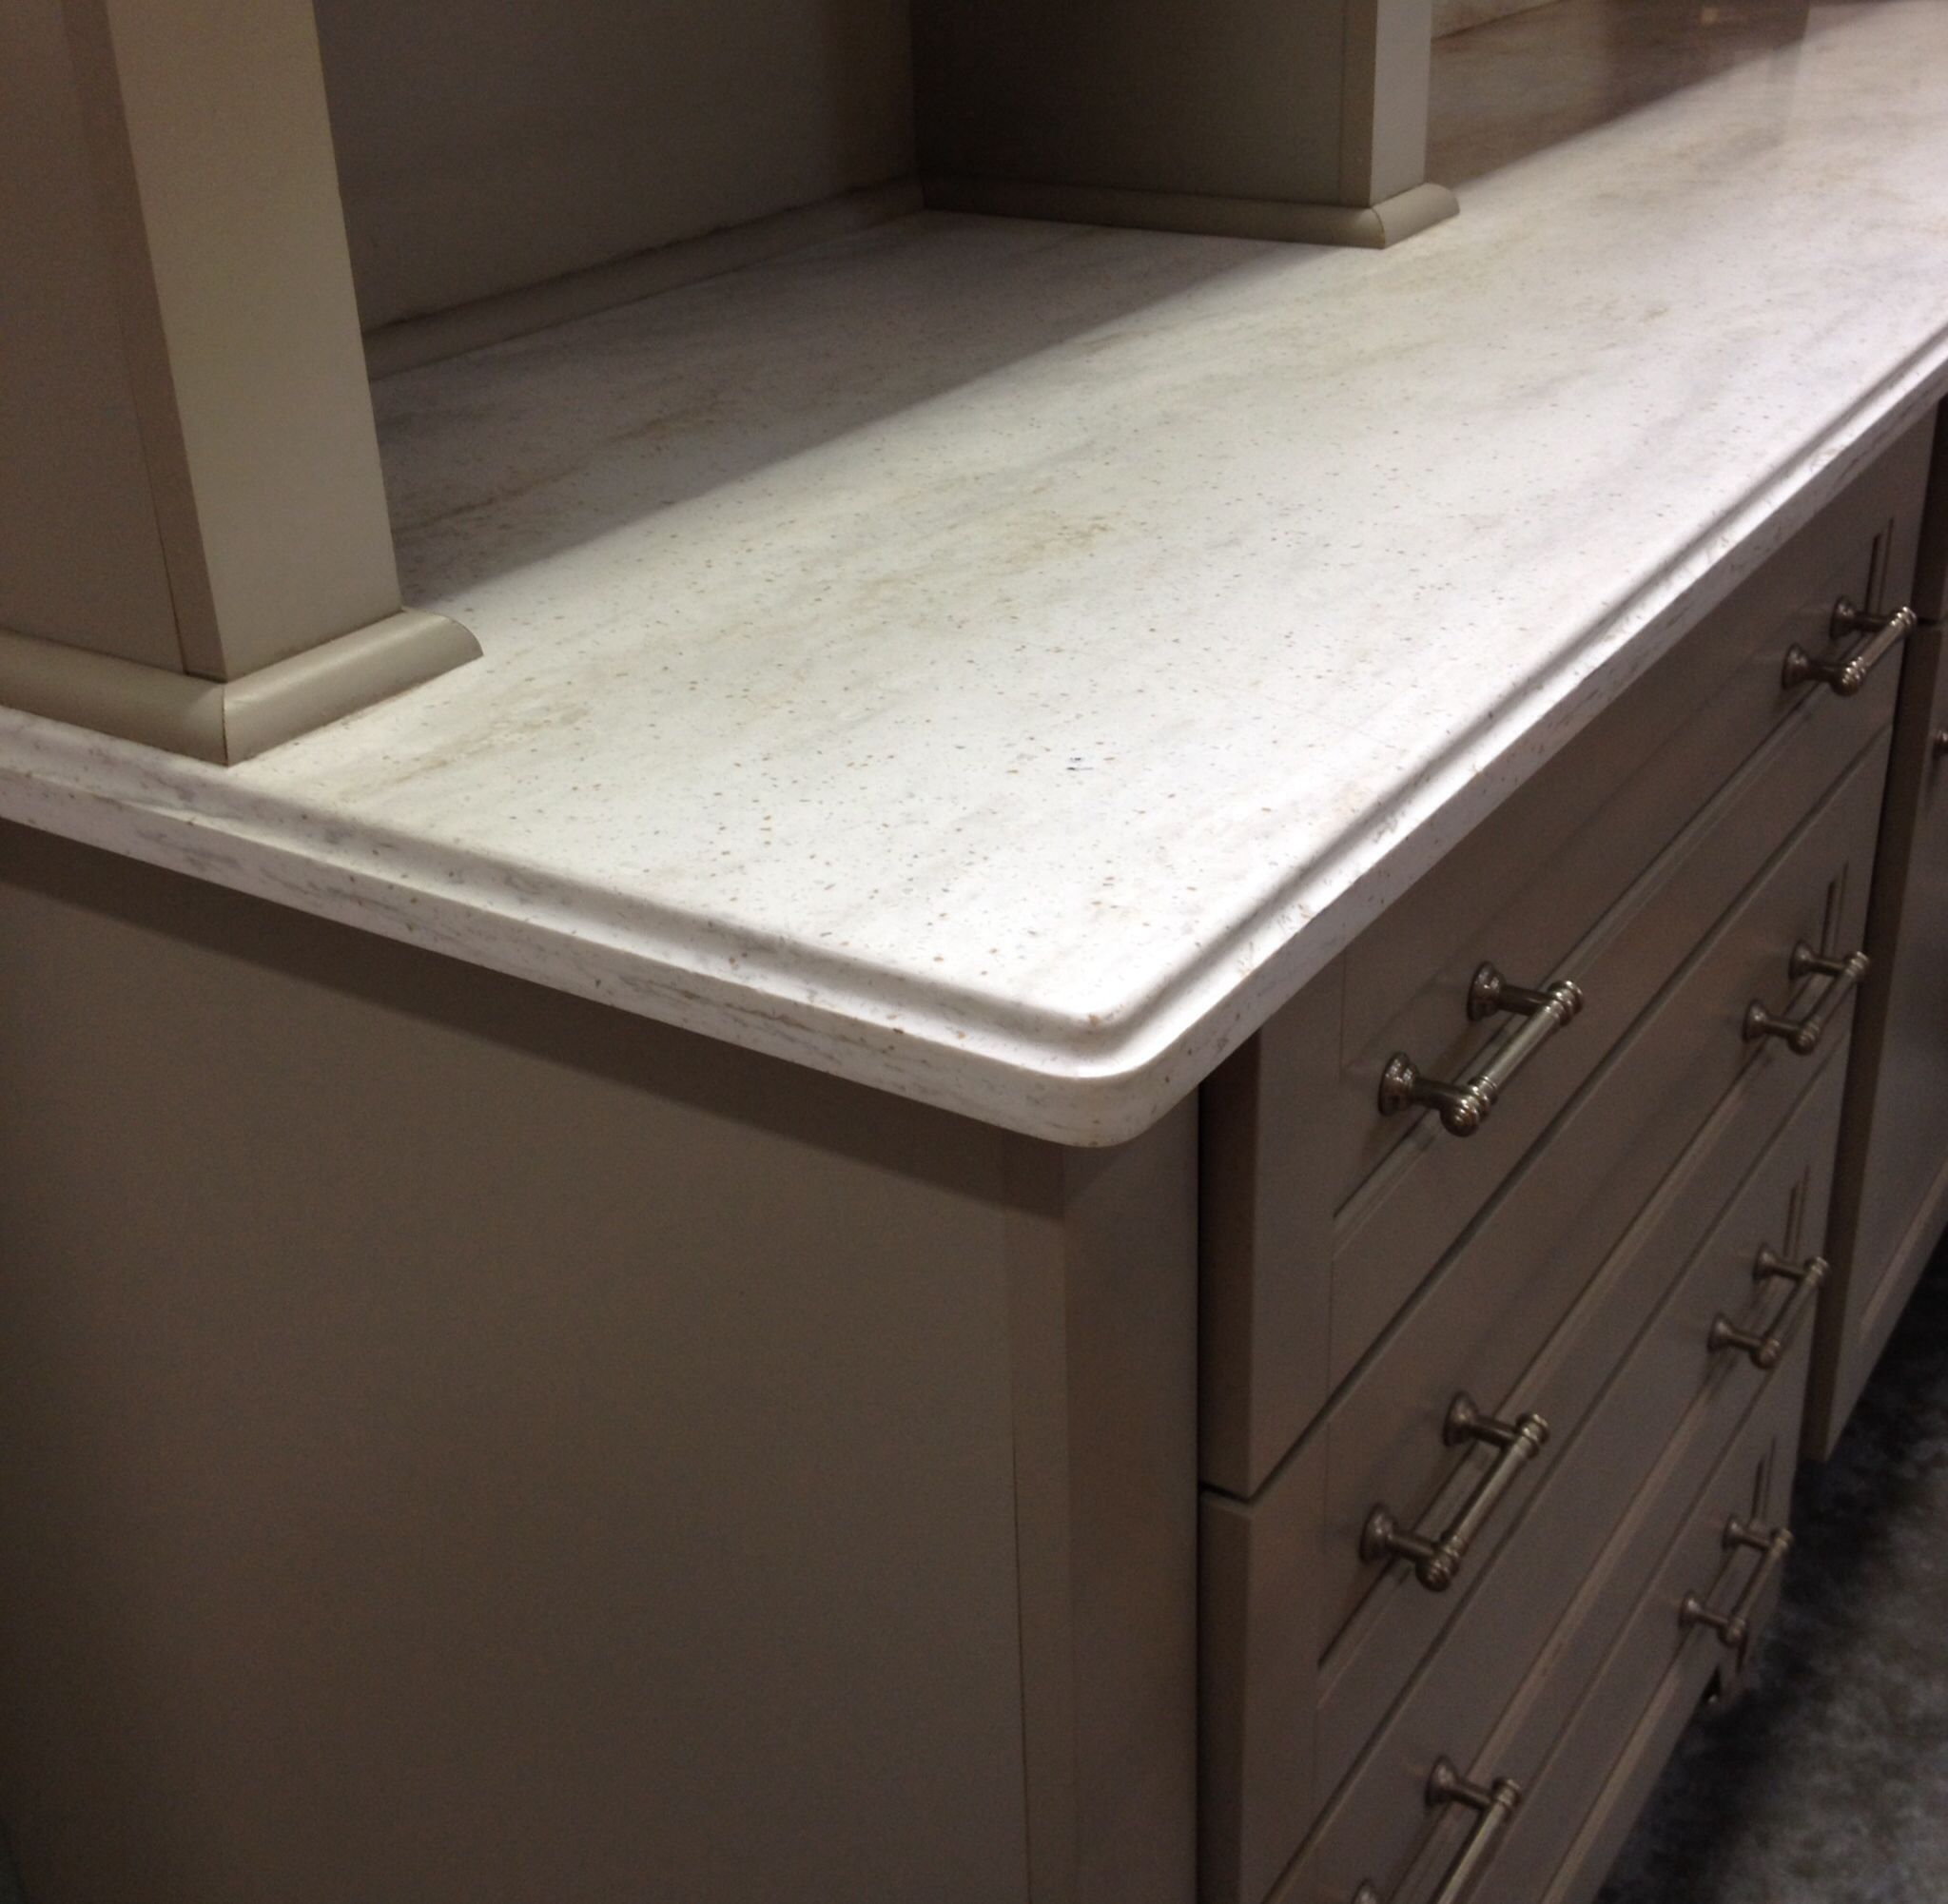 Quartz Bathroom Countertops Home Depot: Corian Countertop With Lg Ogee Edge, Sea Salt, Home Depot